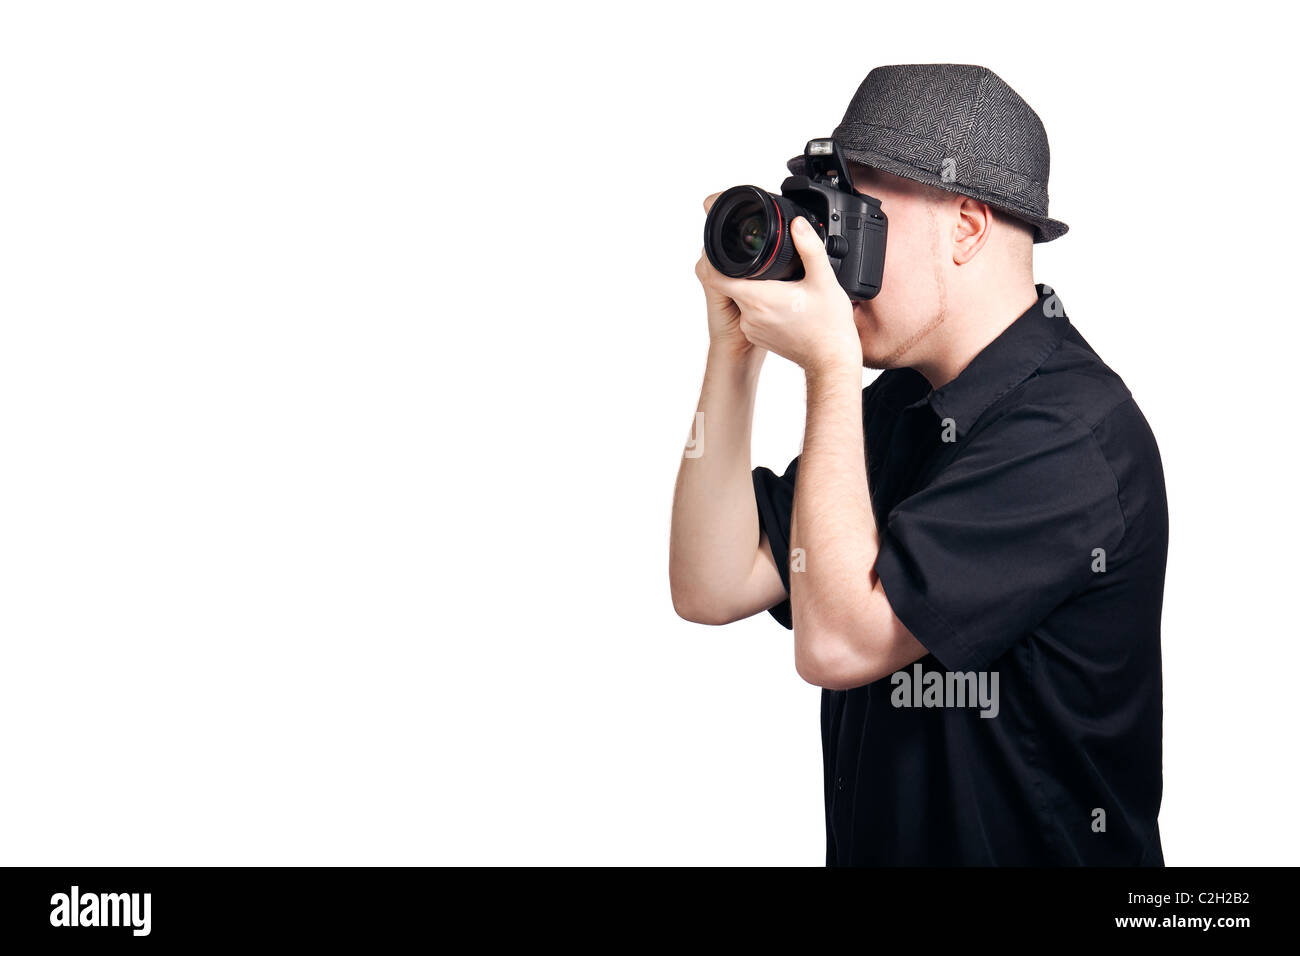 A young man looking through the viewfinder of an SLR camera and focusing to take a photo. - Stock Image